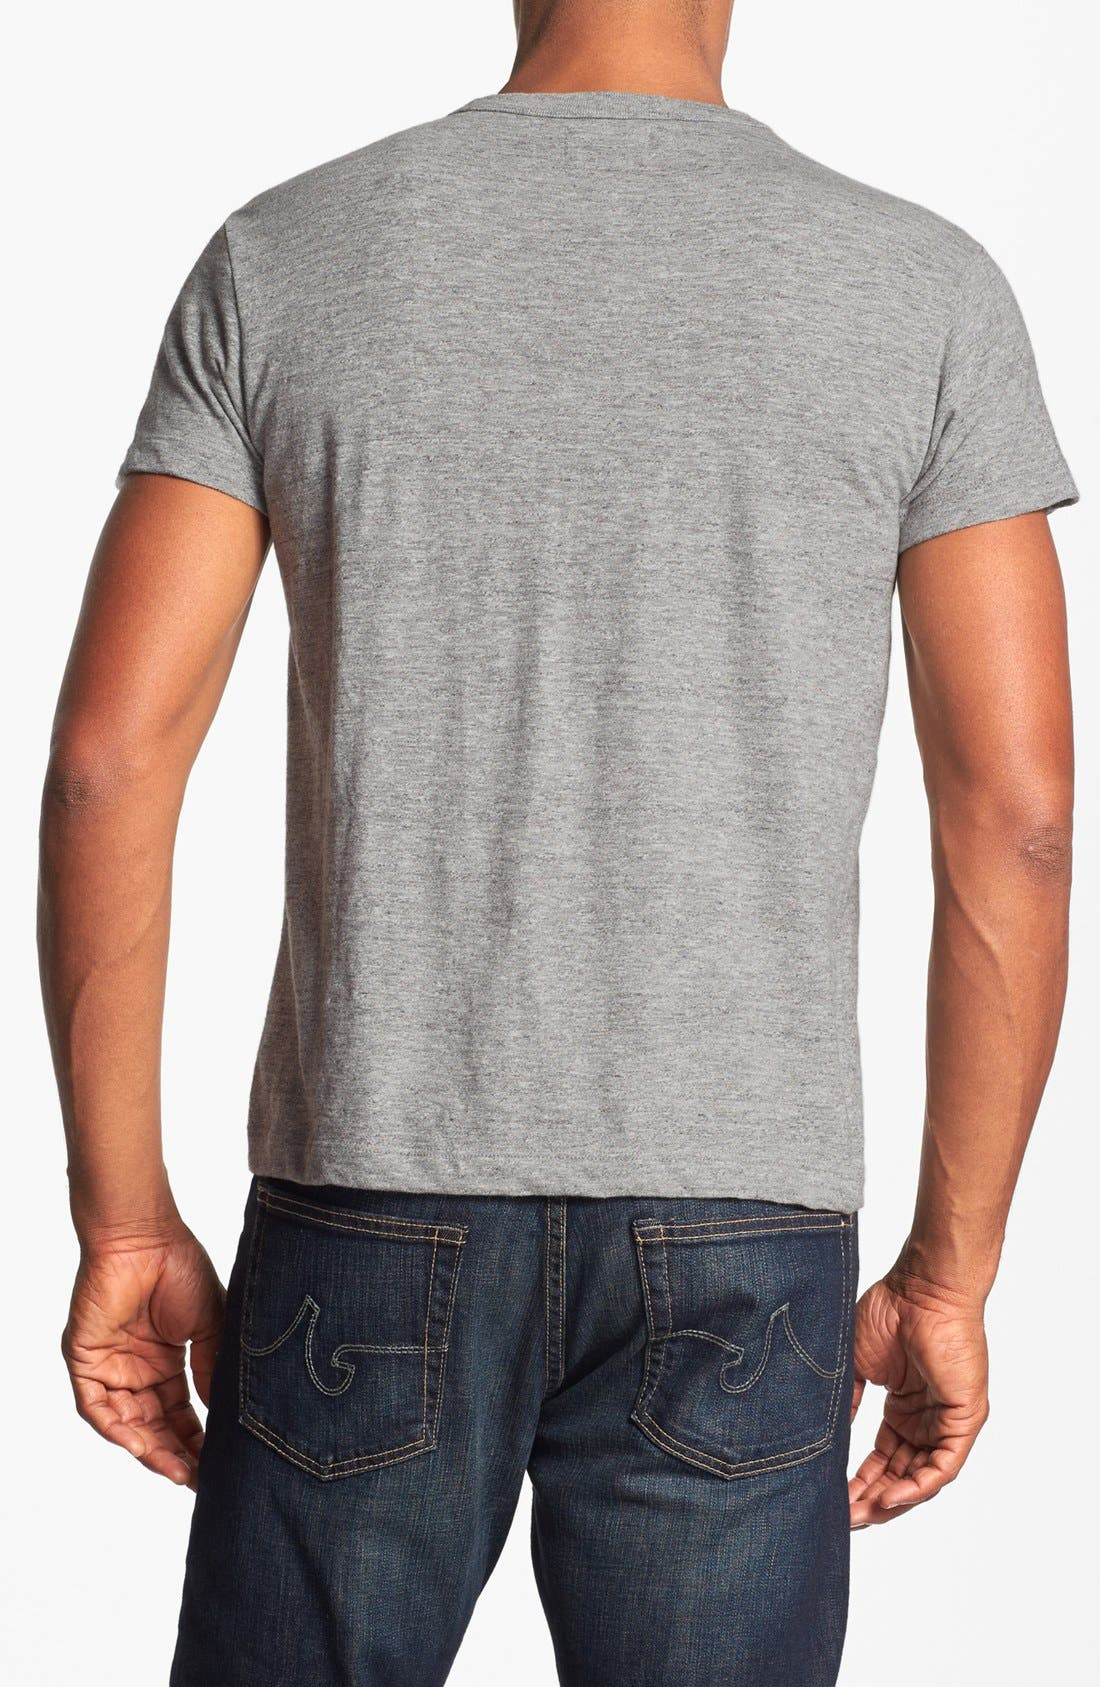 'Parole Whiskey' Trim Fit T-Shirt,                             Alternate thumbnail 2, color,                             Grey Heather